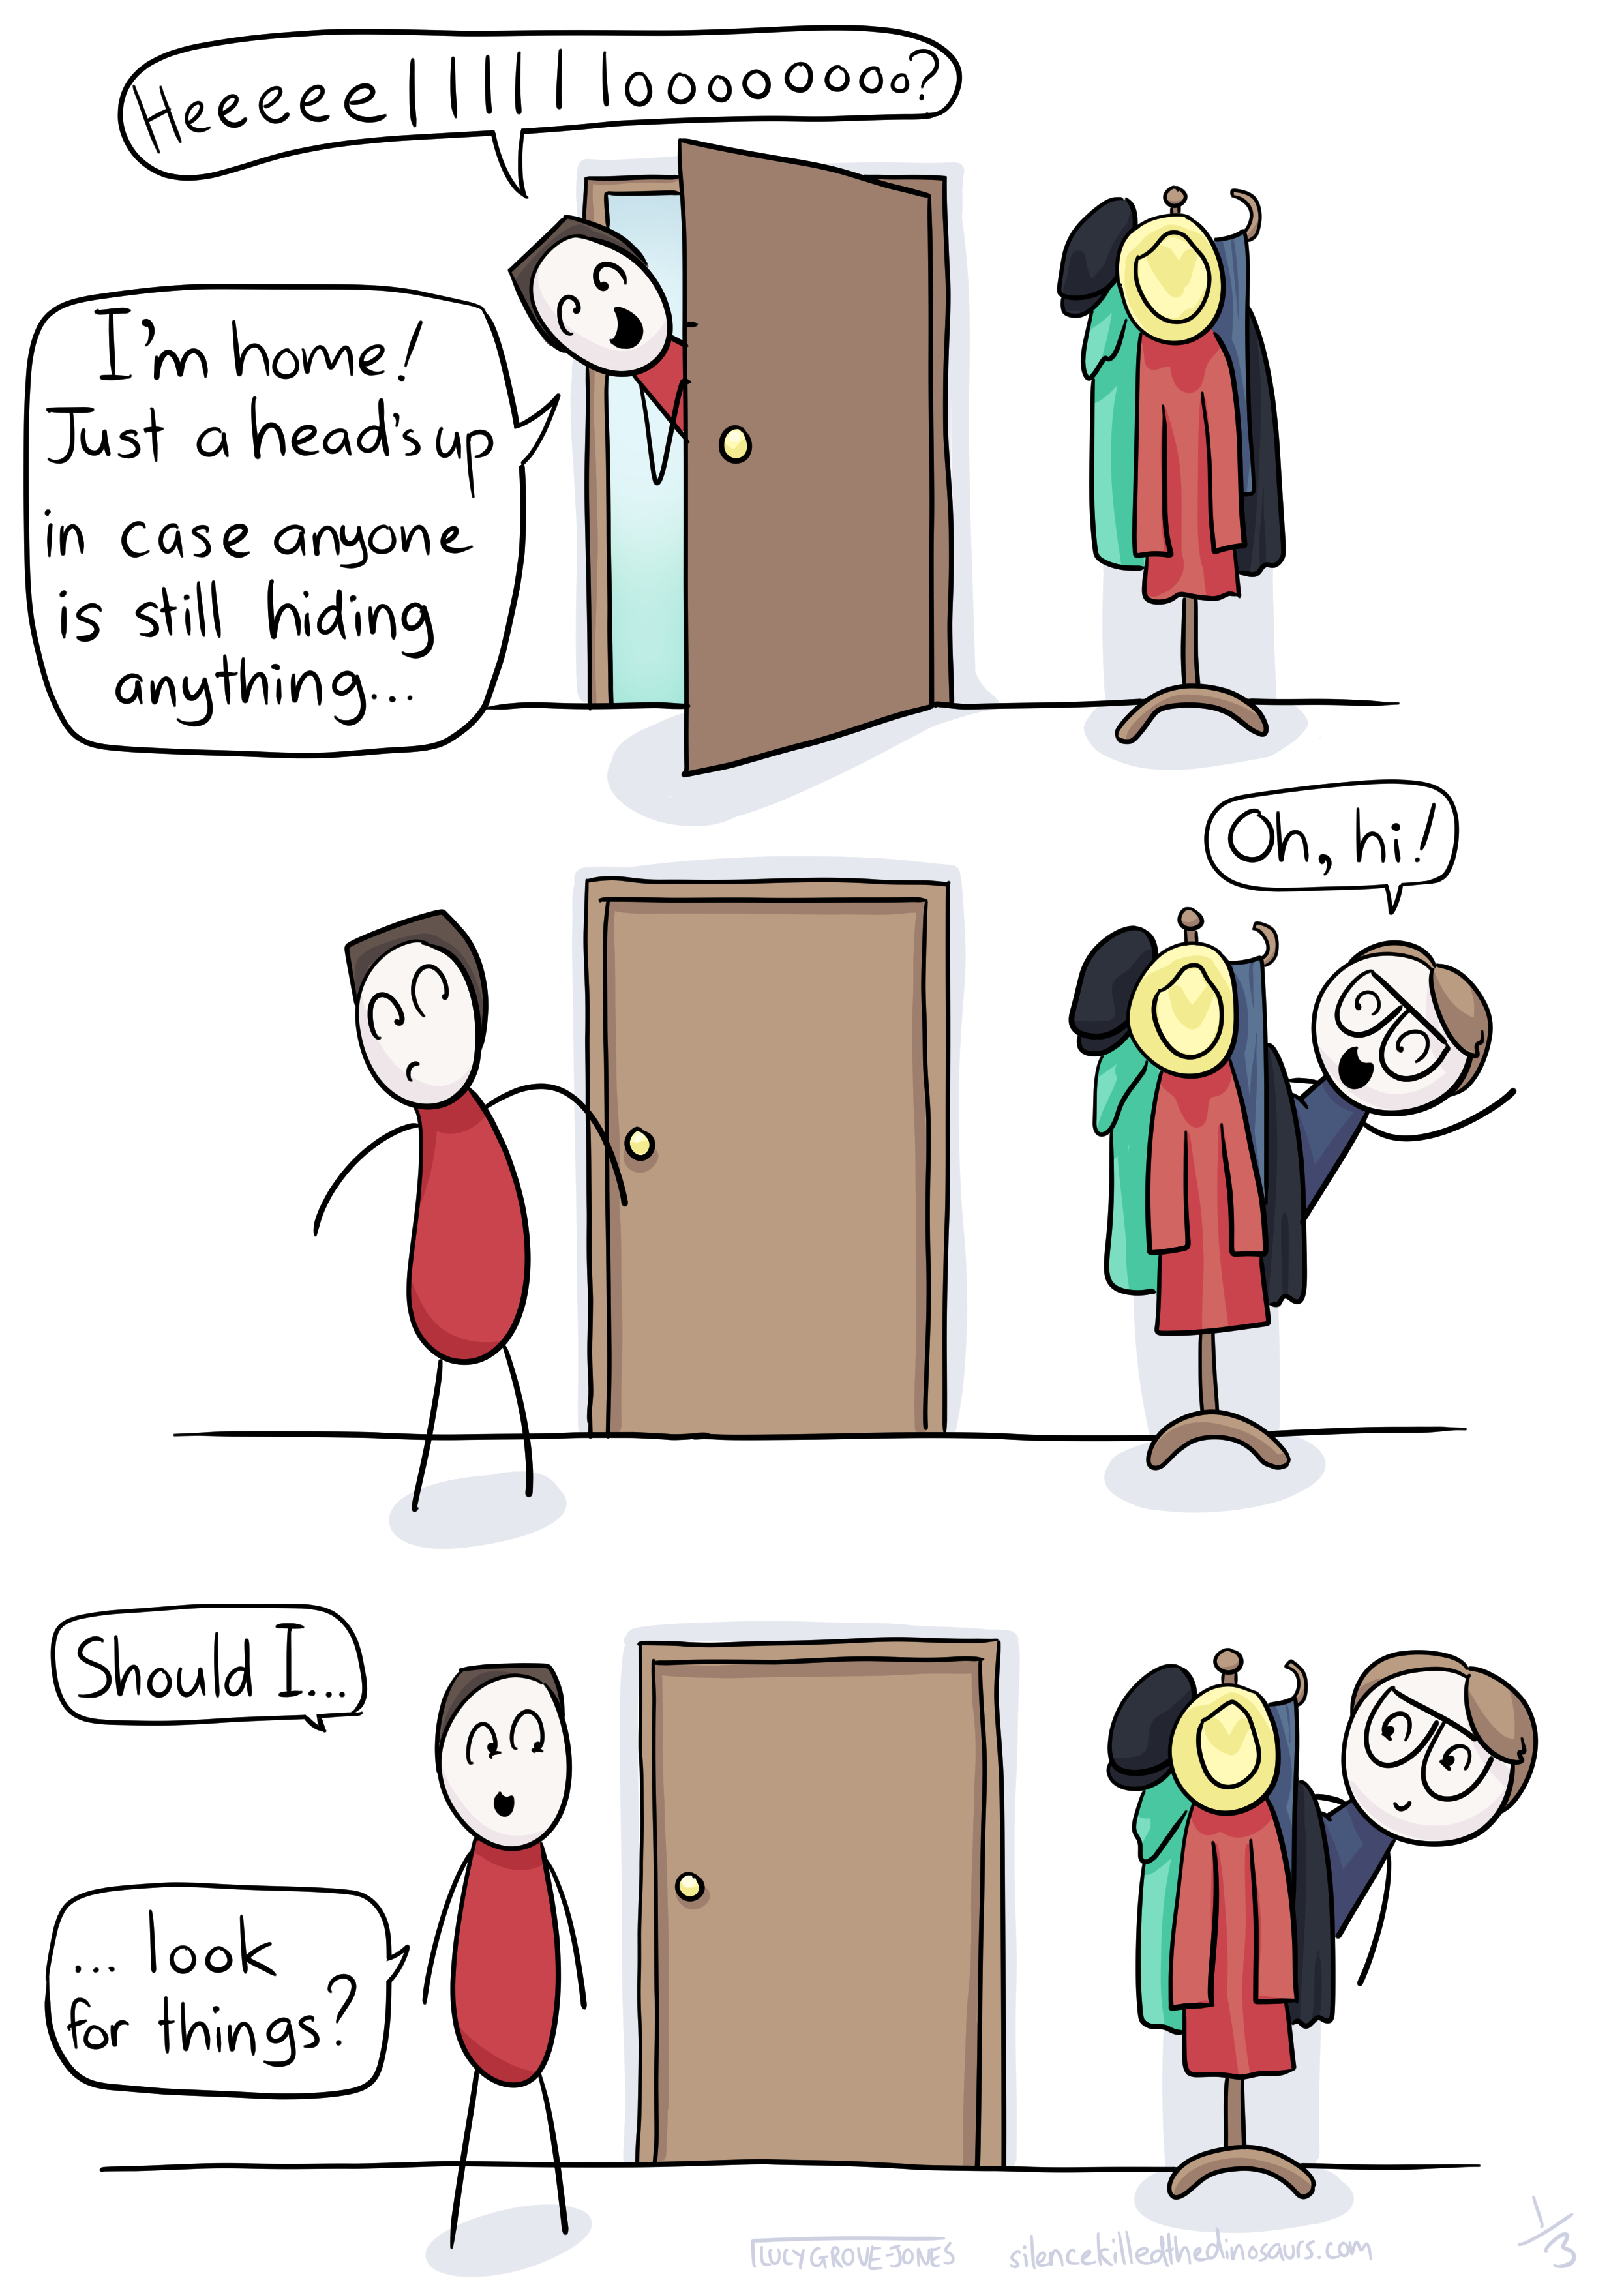 3 panels: Panel 1: my partner sticks his head in the door and says 'heeeeeelllloooo? I'm home! Just a head's up in case anyone is still hiding anything ...' Panel 2: I pop out improbably from behind the coat rack and say 'oh, hi!'. Panel 3: my partner says 'Should I ... Look for things?'